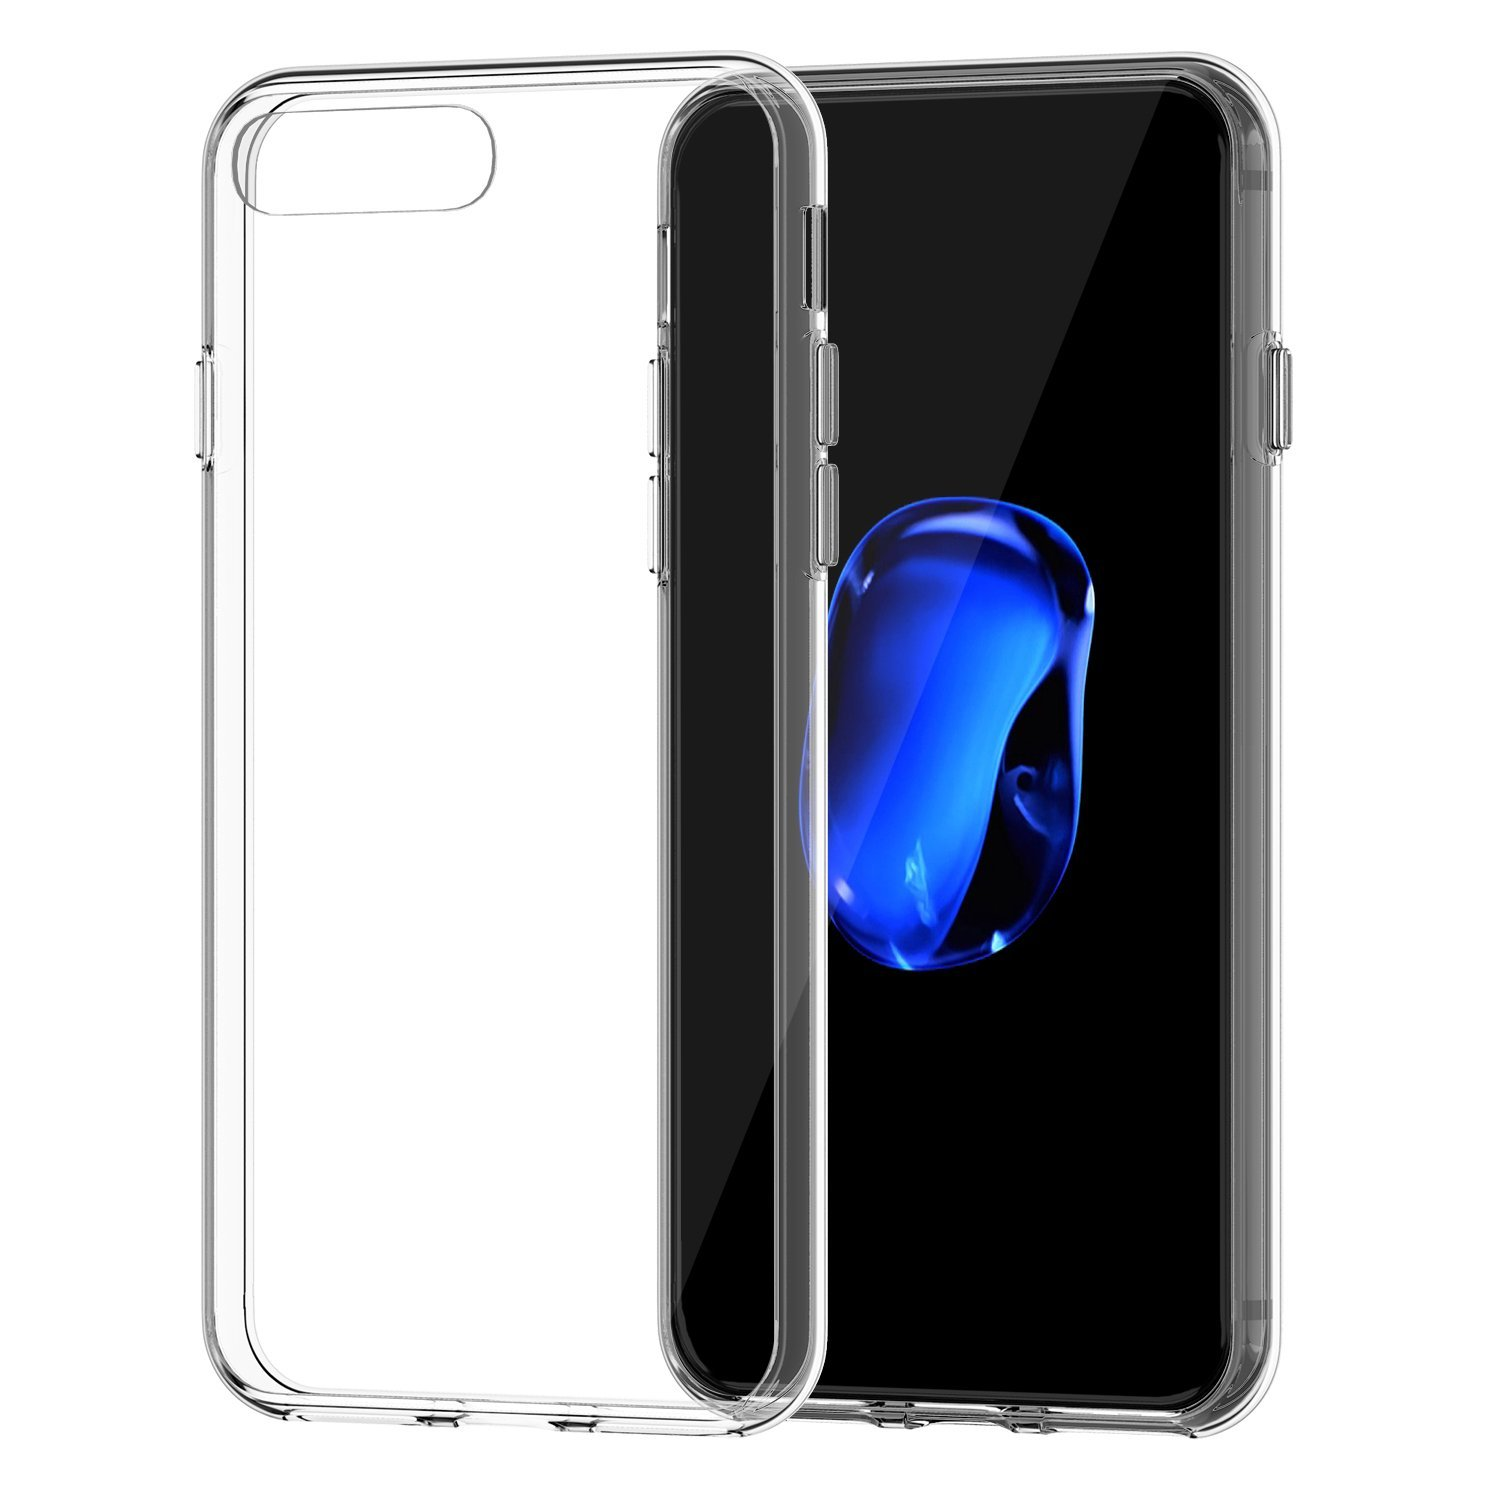 weifajk clear phone case for iphone 5s 5 se cases. Black Bedroom Furniture Sets. Home Design Ideas